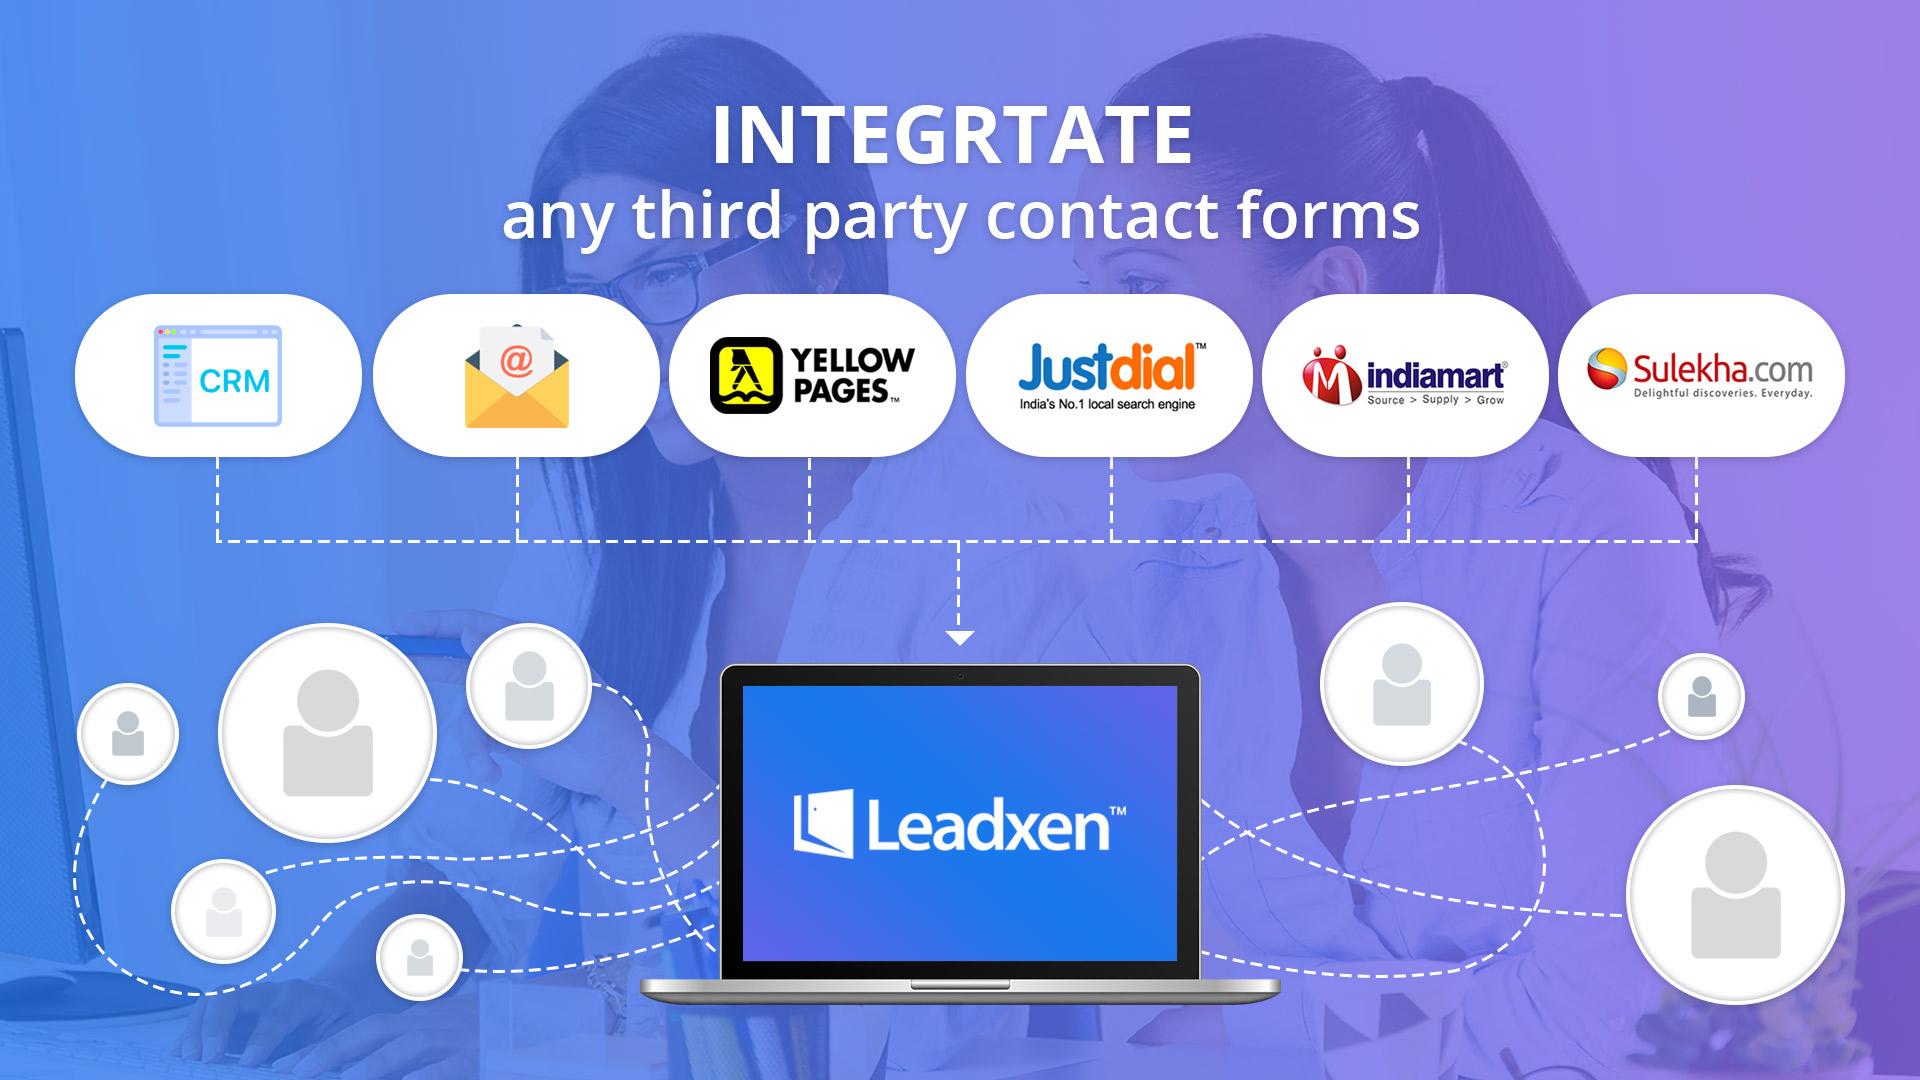 leadxen crm third party contact form